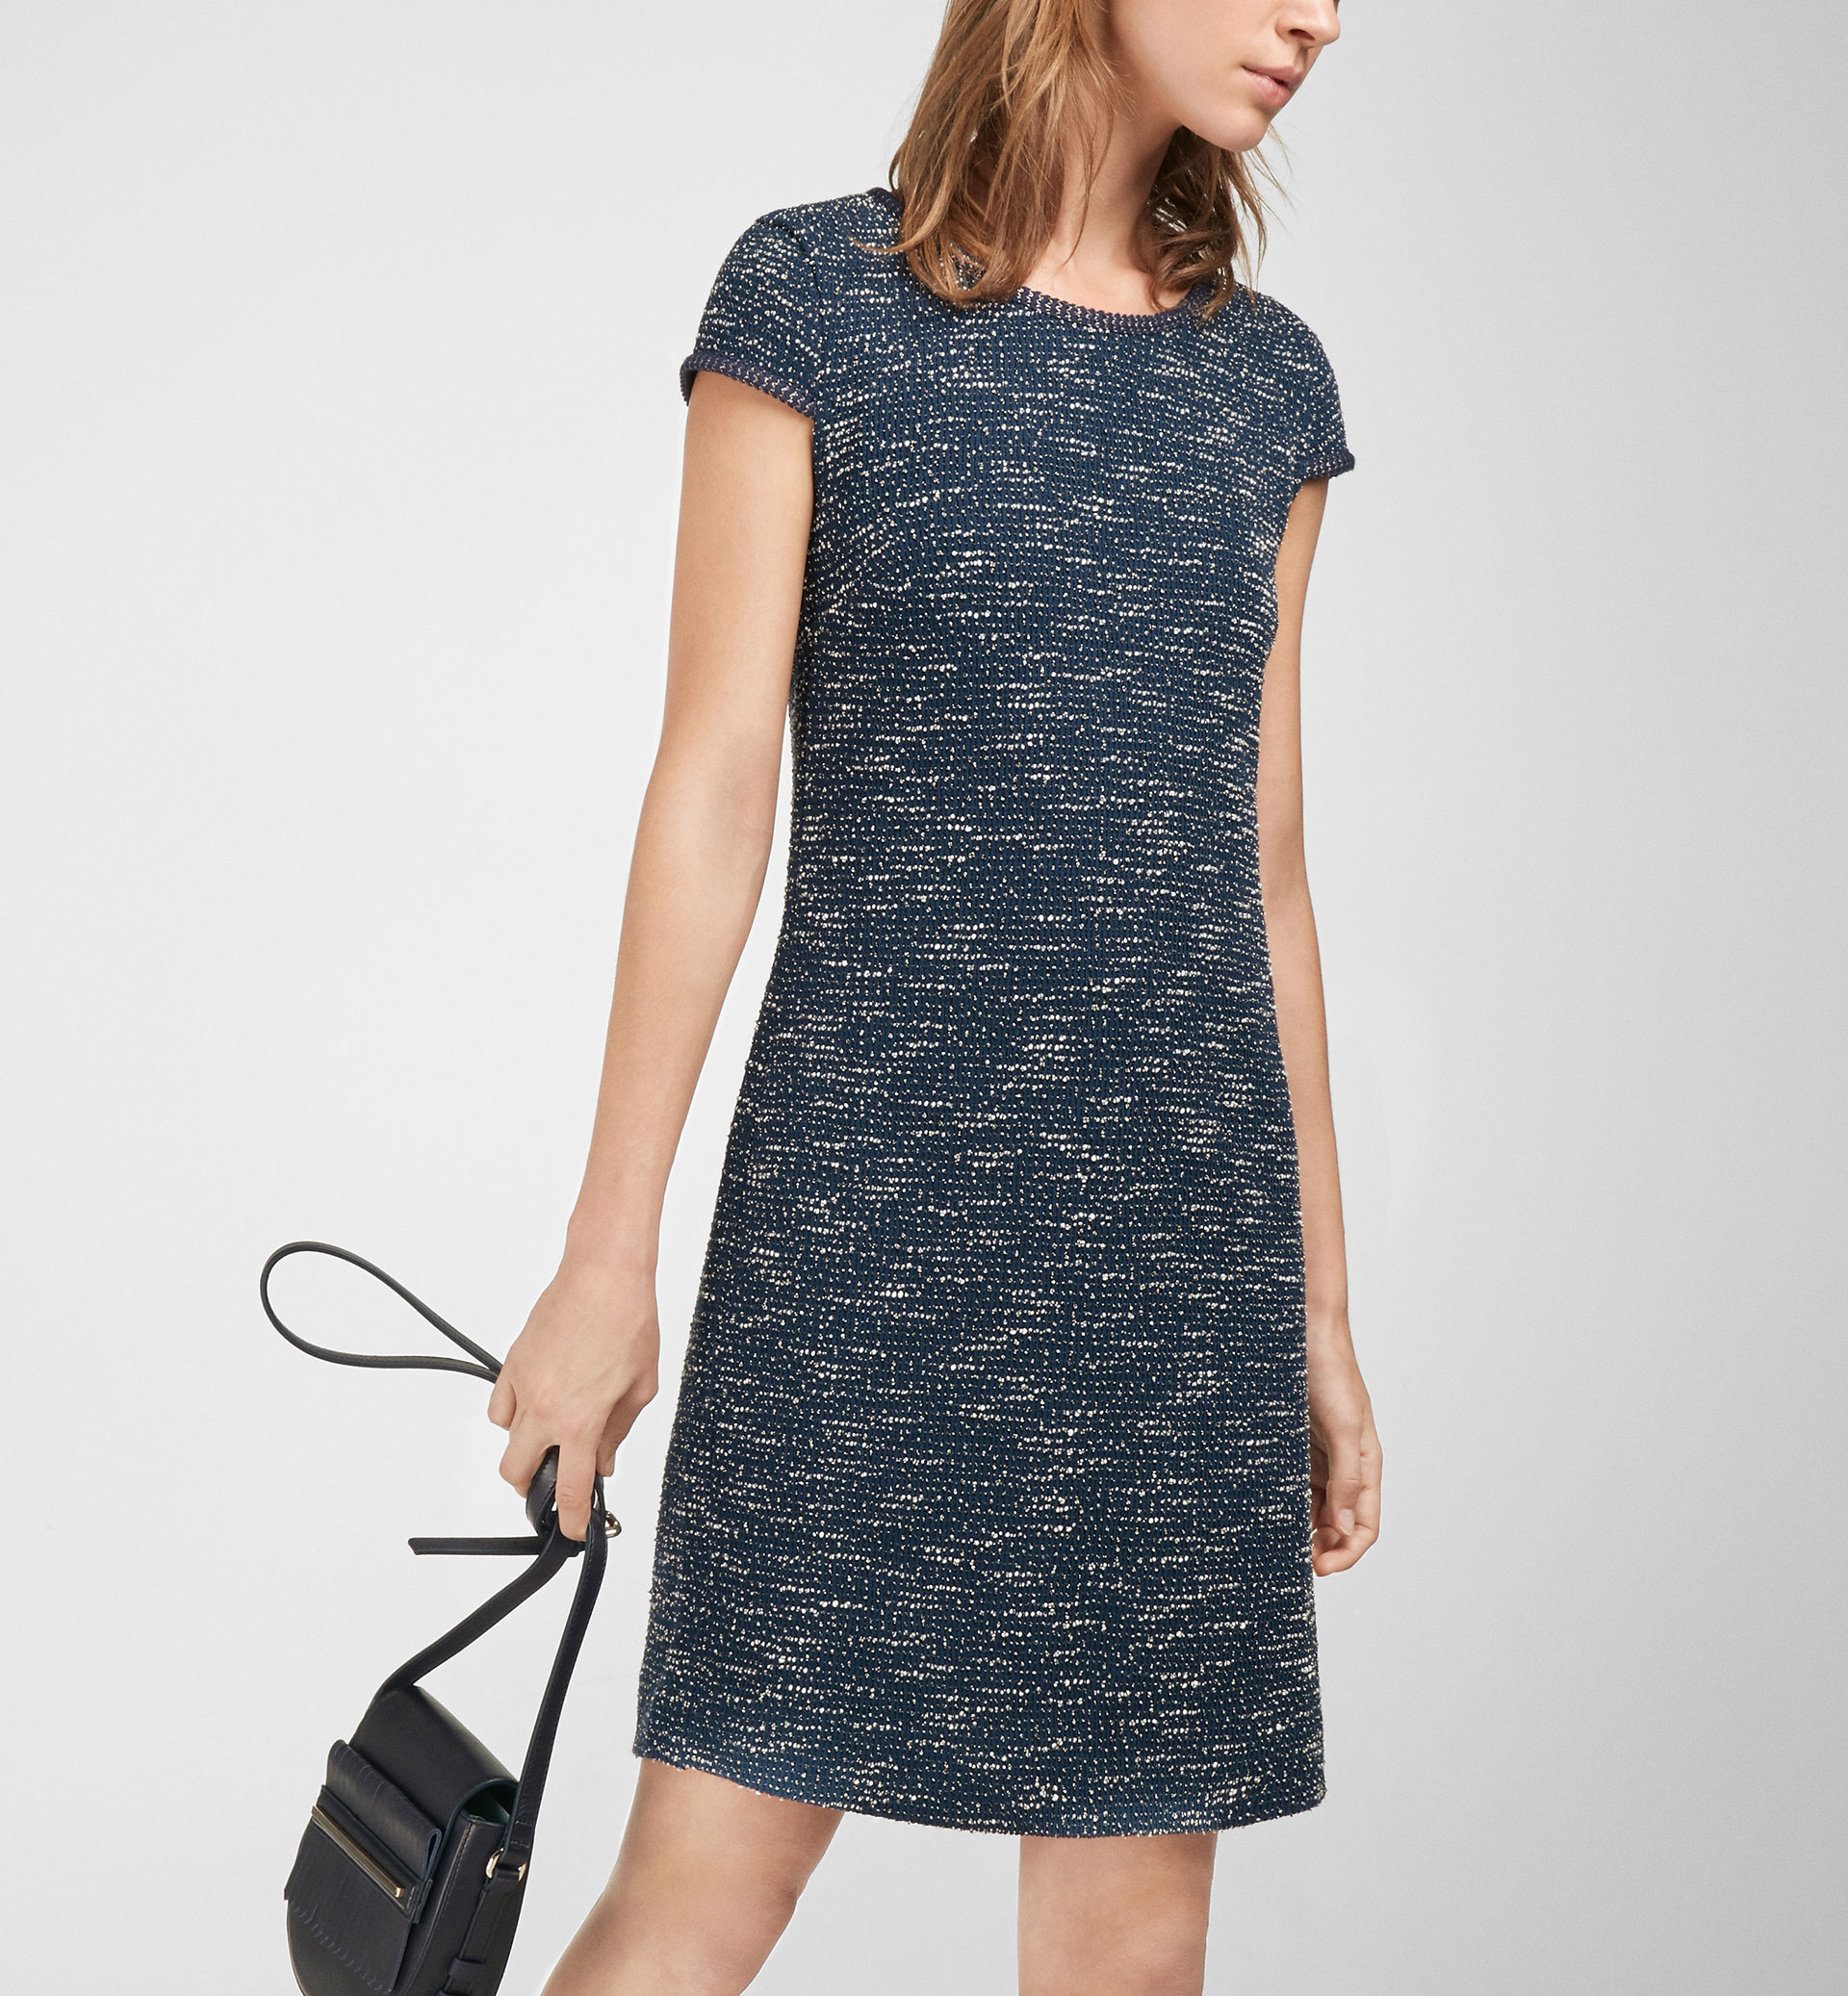 NAVY TWEED DRESS